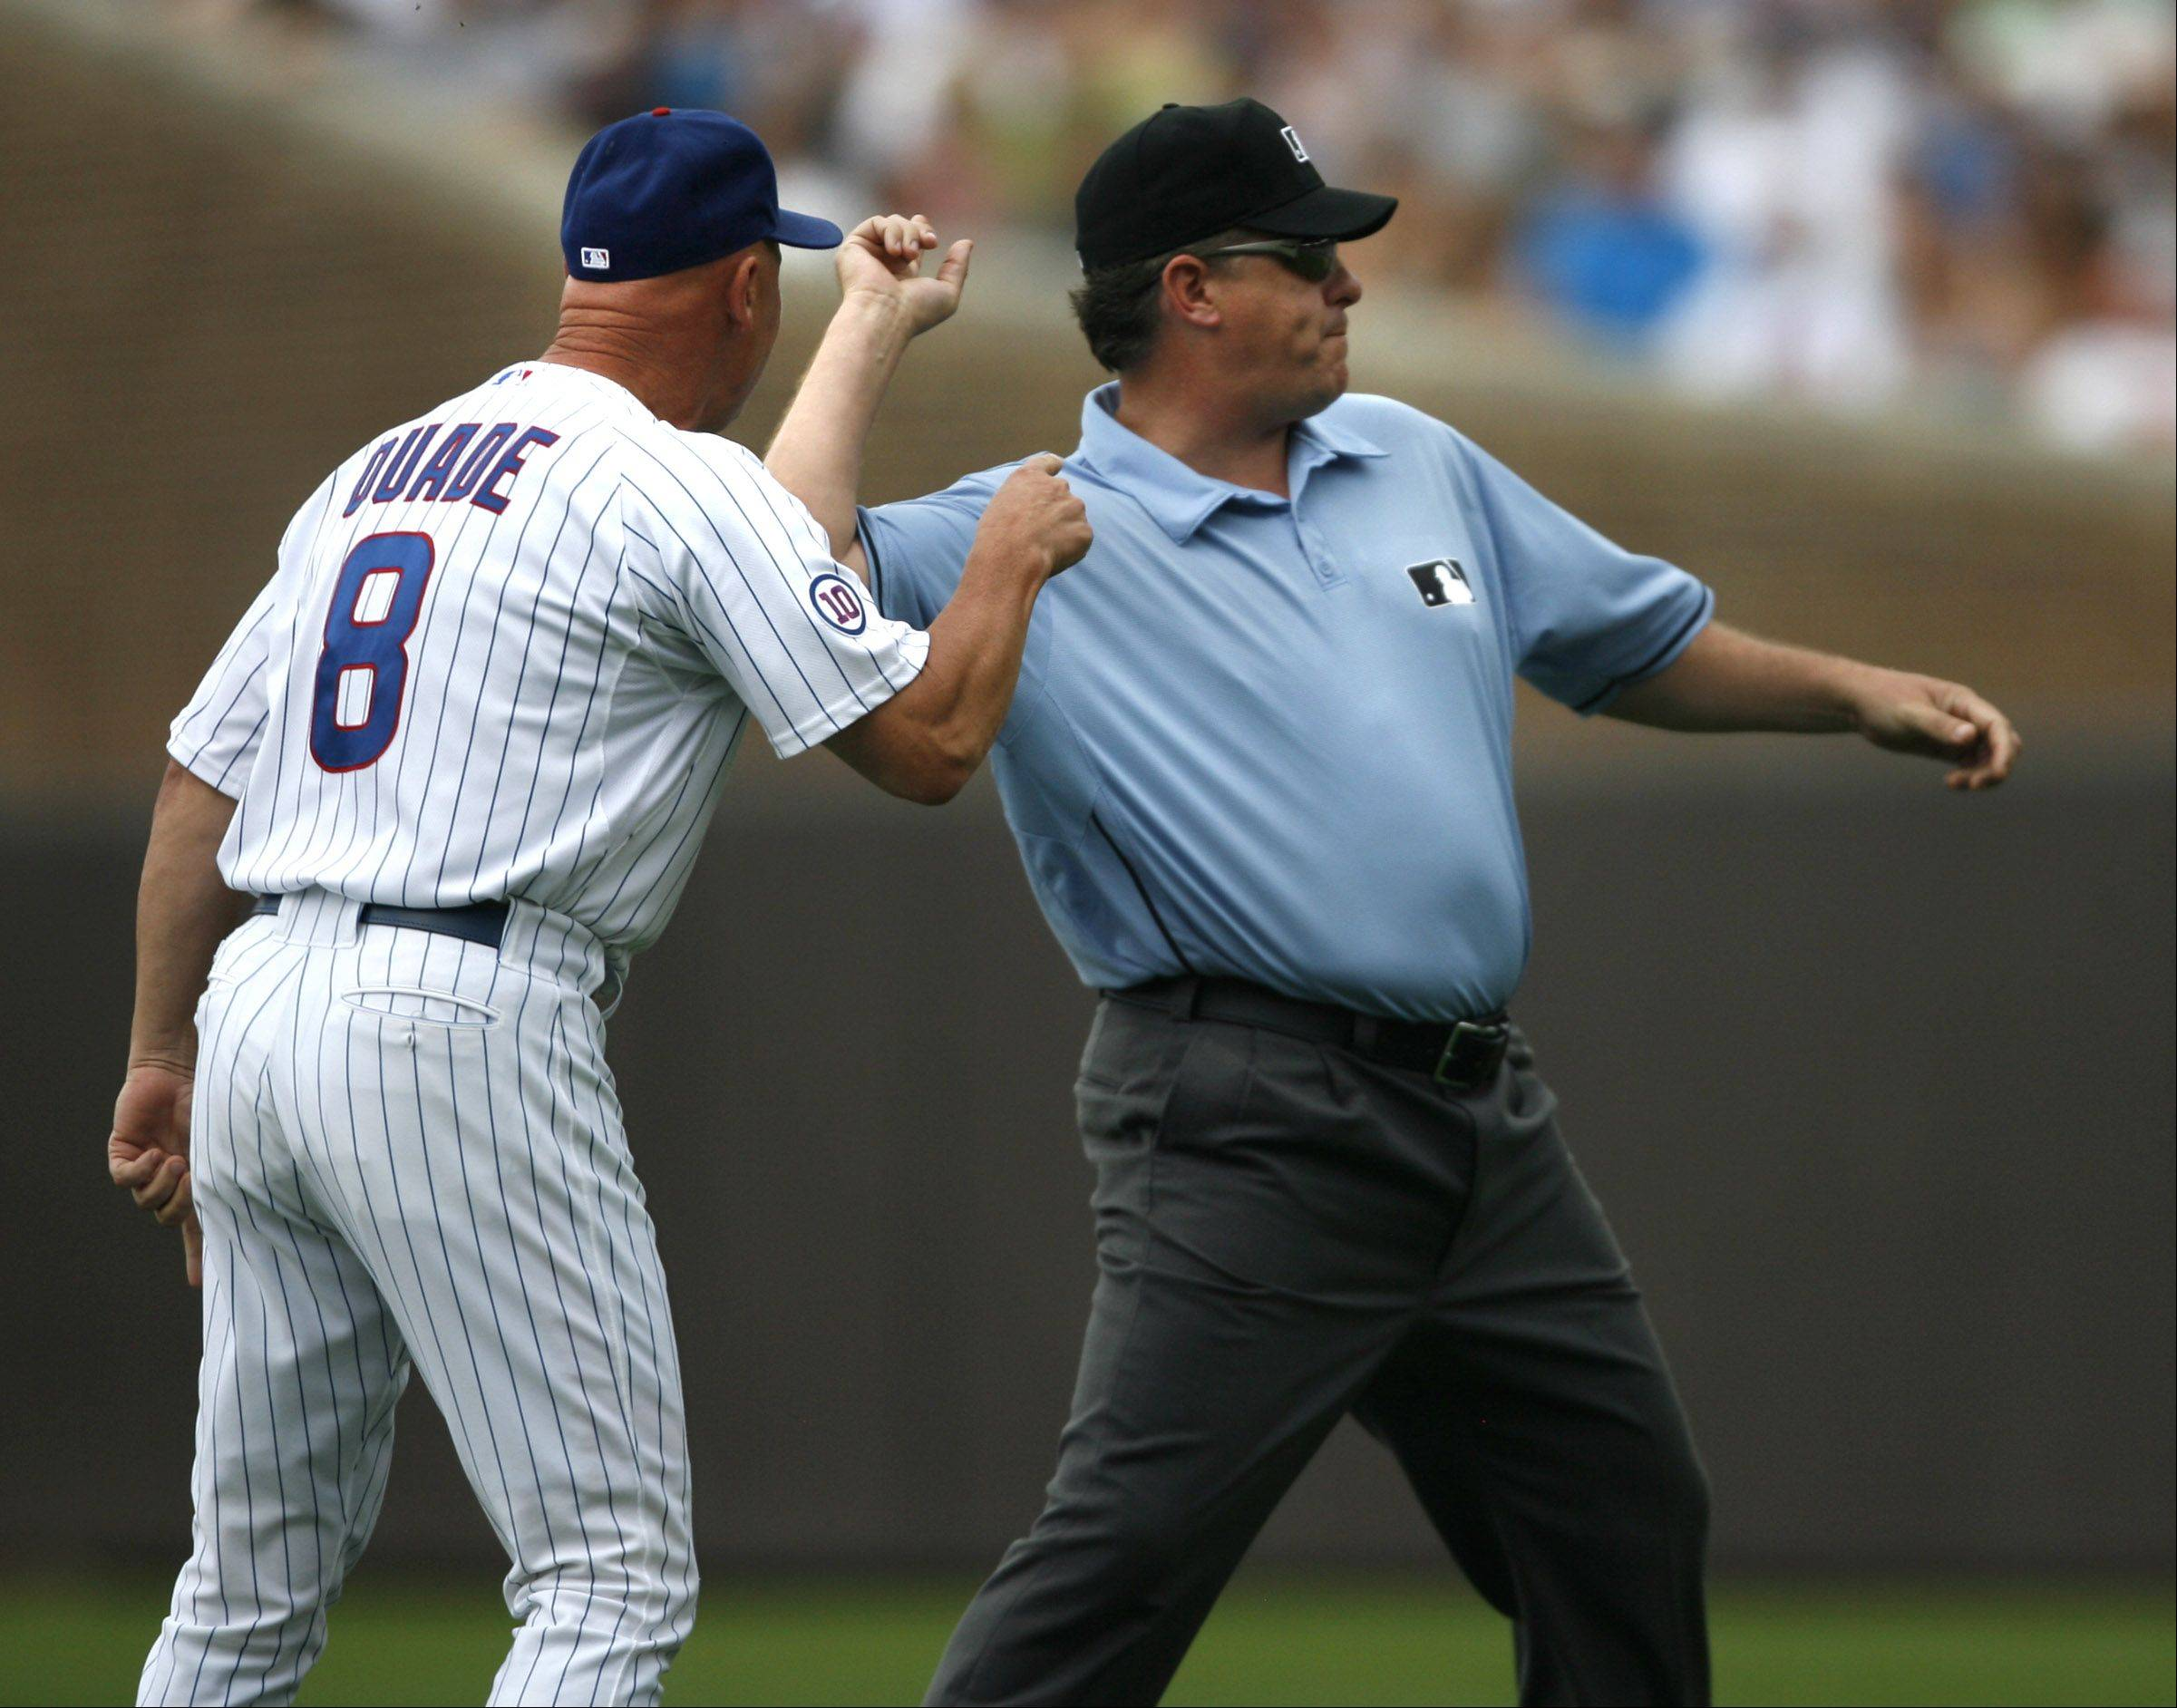 Cubs manager Mike Quade is thrown out of the game with the White Sox at Wrigley Field on Saturday.